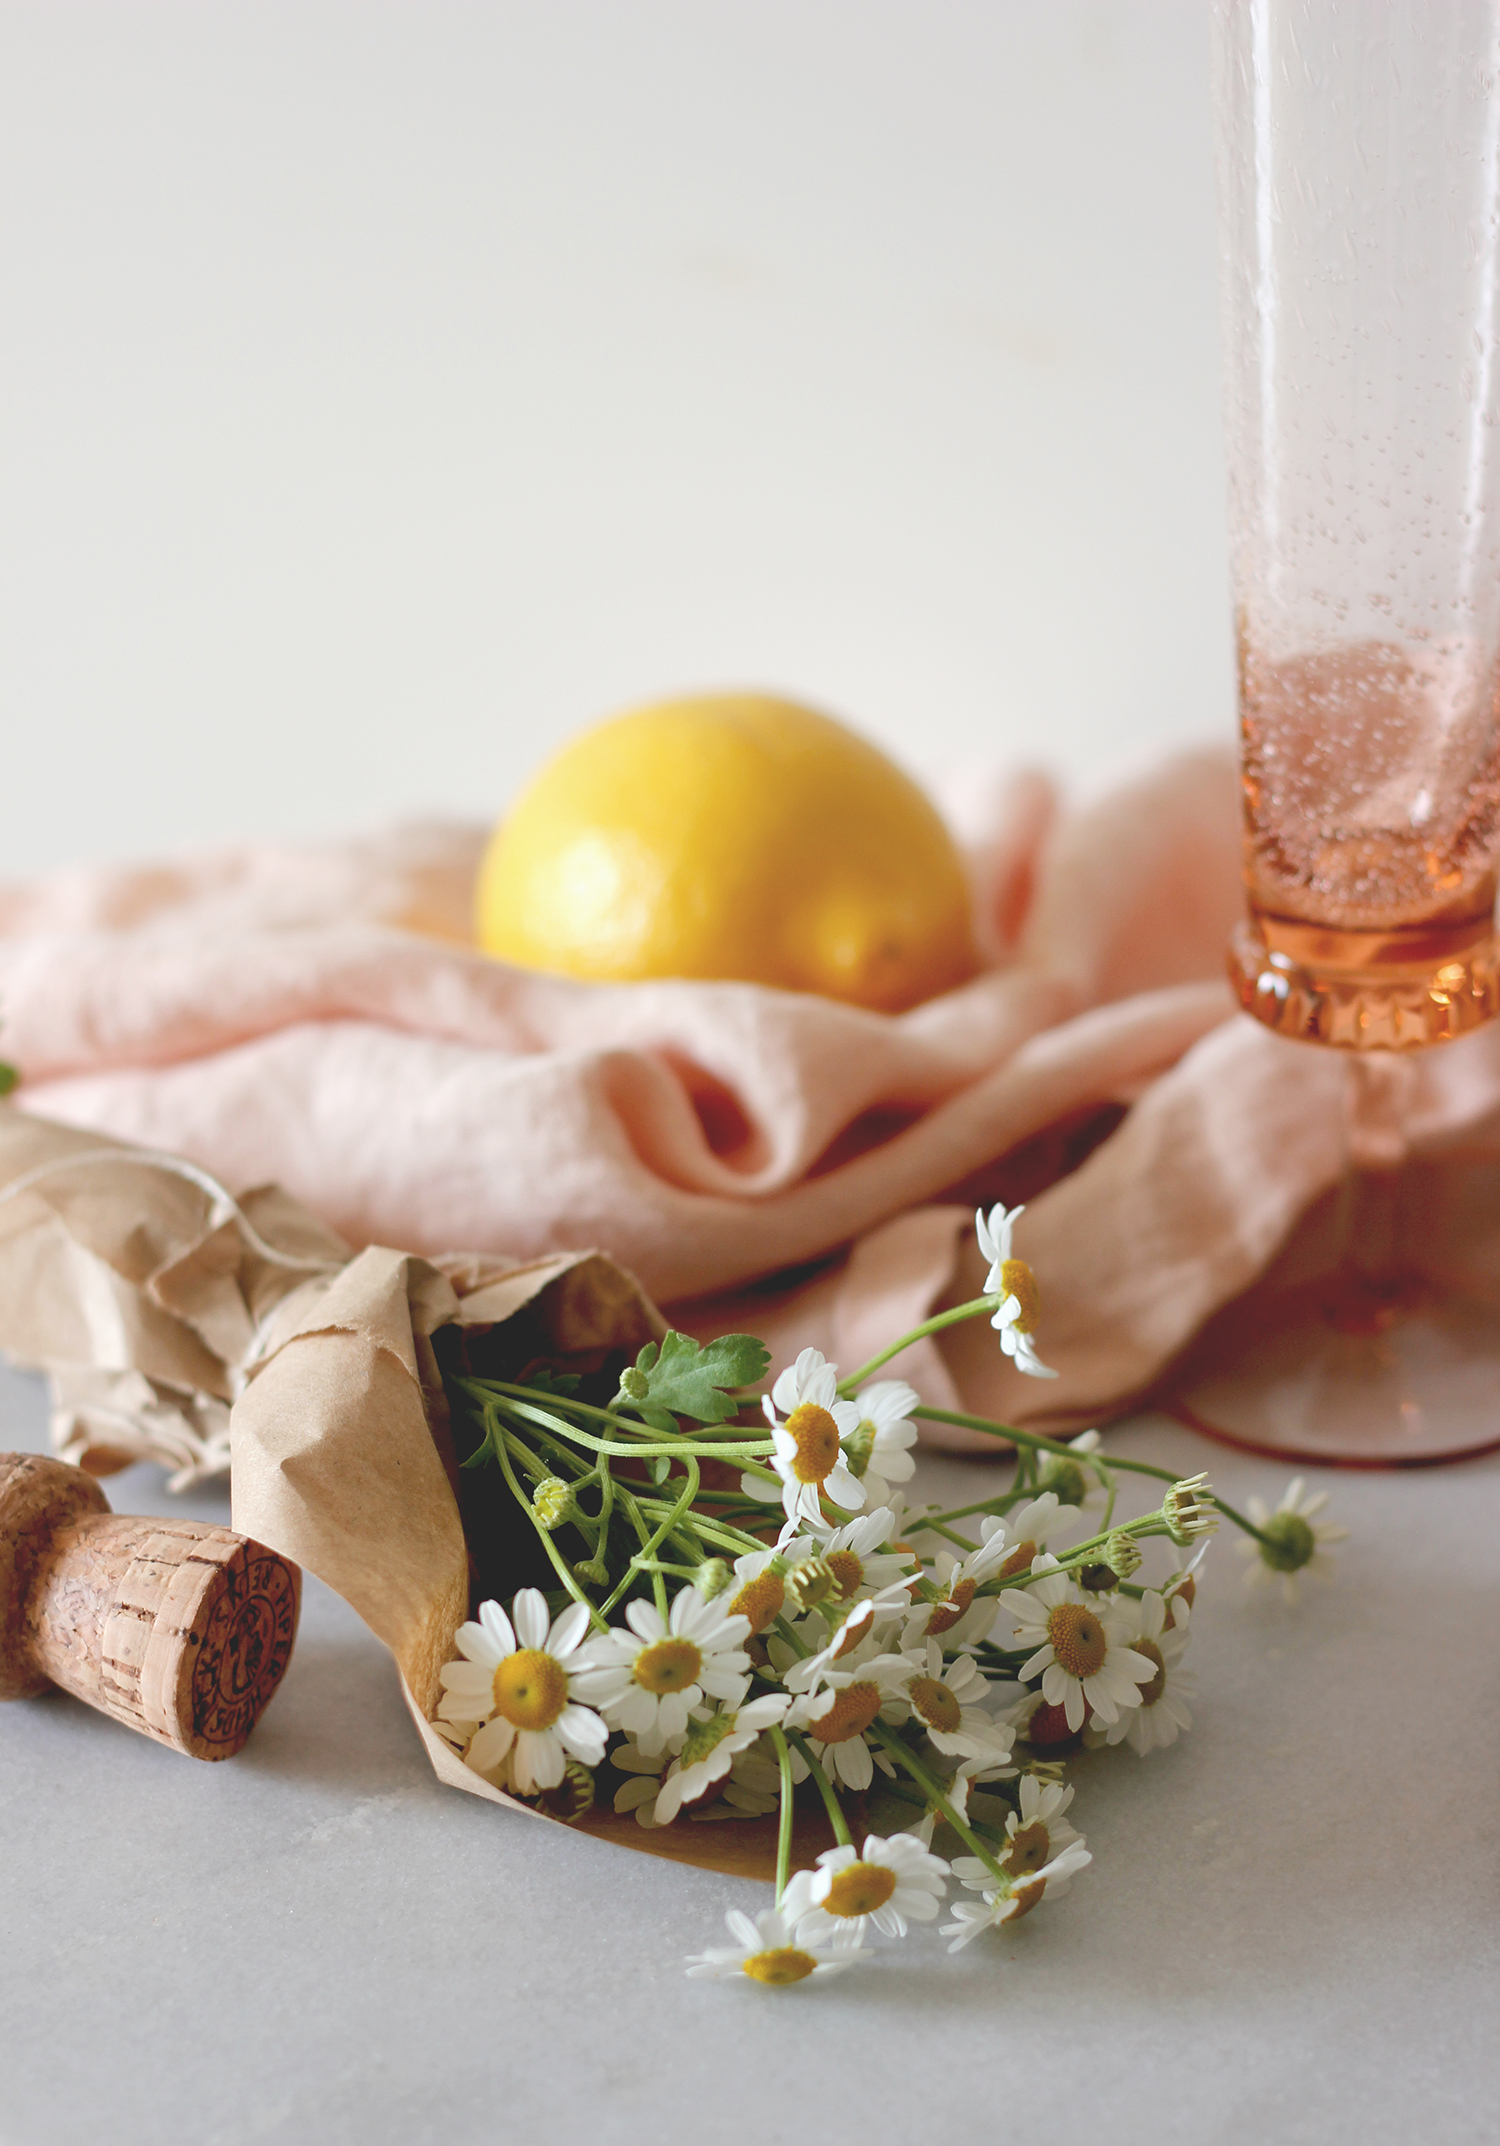 chamomile blooms for cocktail garnish | A Fabulous Fete